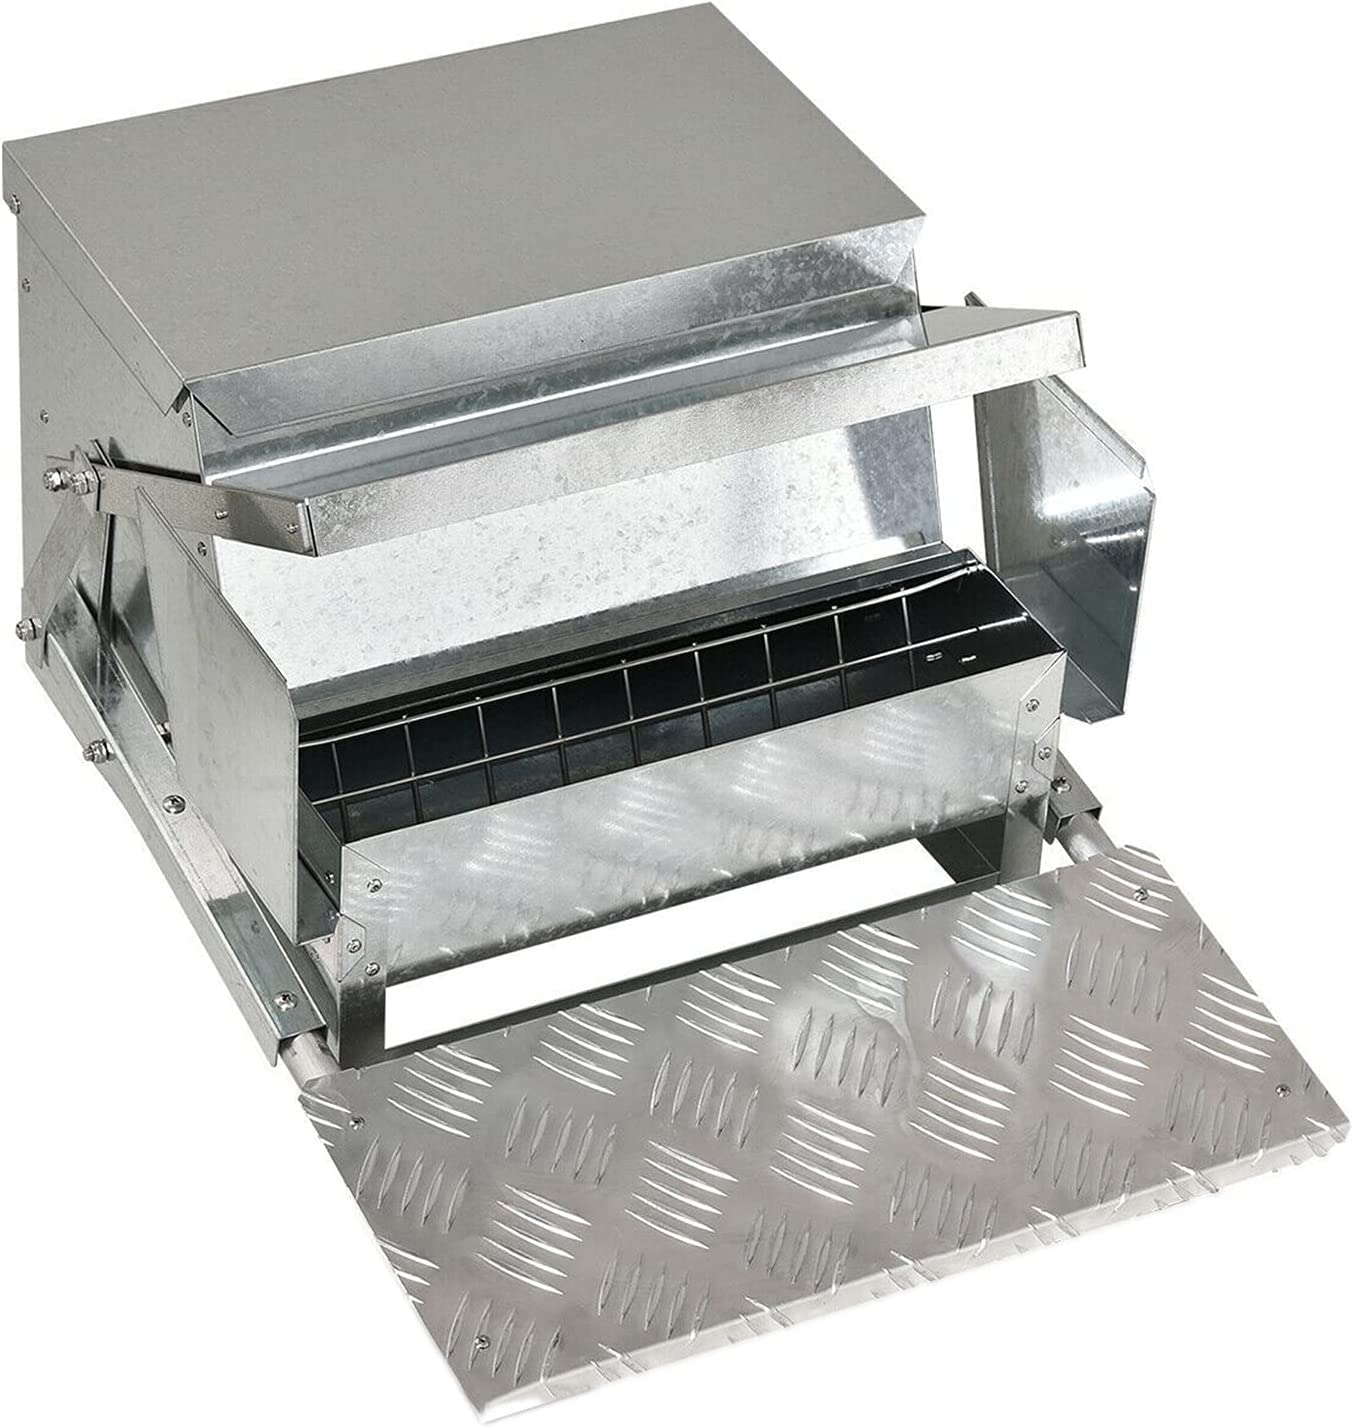 GXP Automatic Chicken Feeder Galvanized Poultry Sales results No. 1 Feeders Super Special SALE held 30 Steel